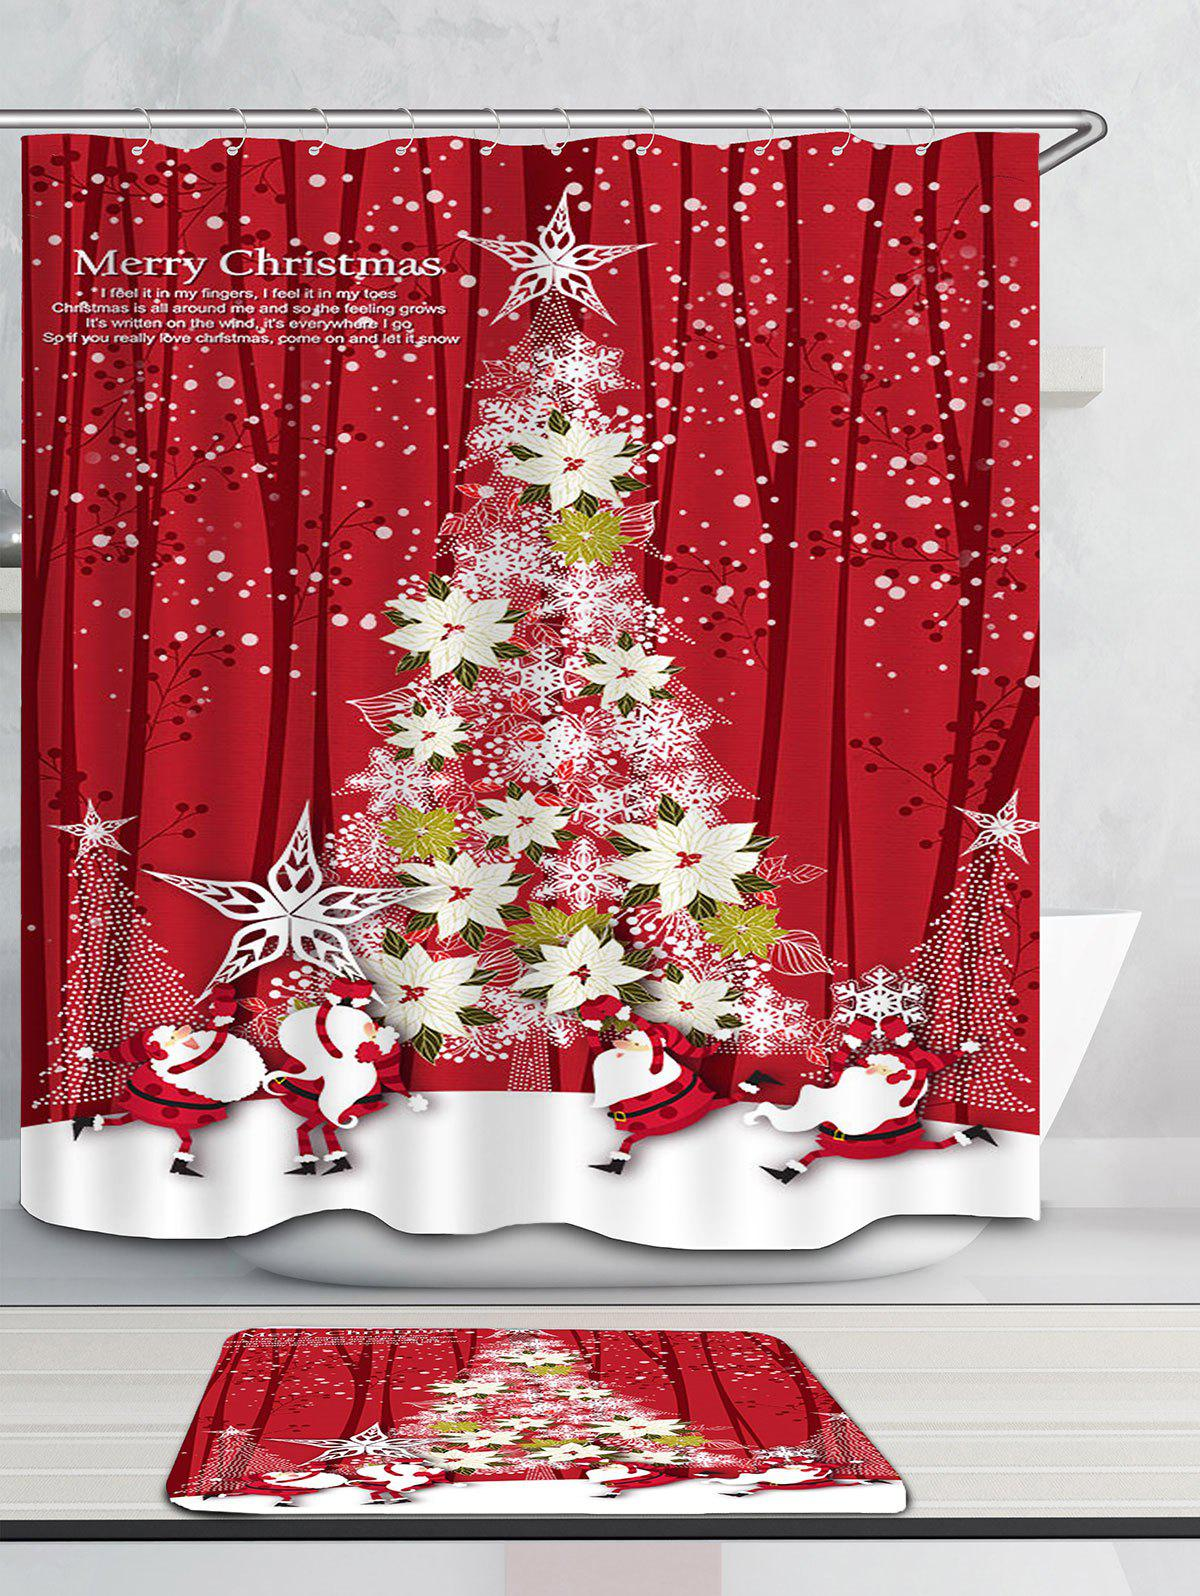 Flower Christmas Tree Printed Waterproof Shower Curtain - RED W59 INCH * L71 INCH